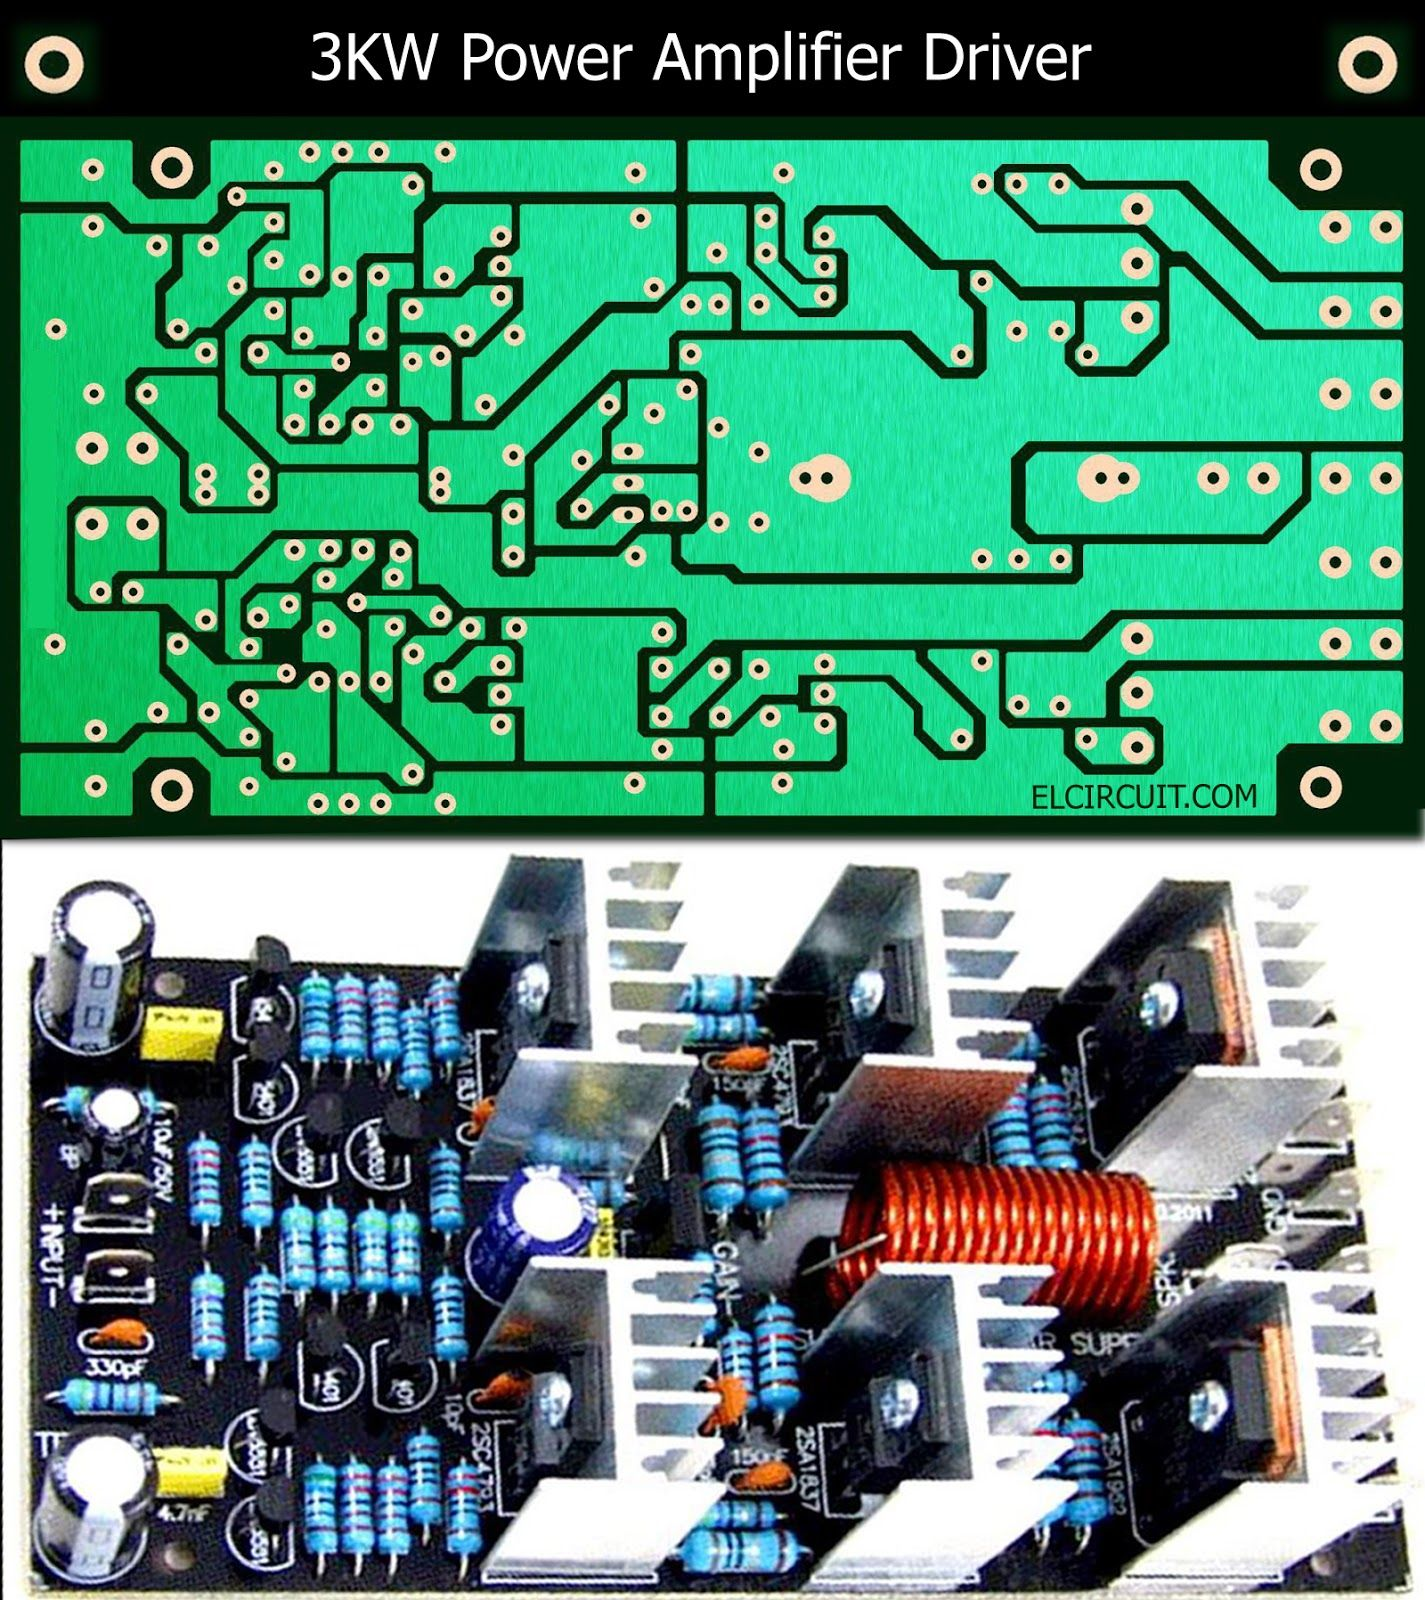 3kw Power Amplifier Driver Circuit Pcb Layout Power Amplifiers Audio Amplifier Circuit Diagram